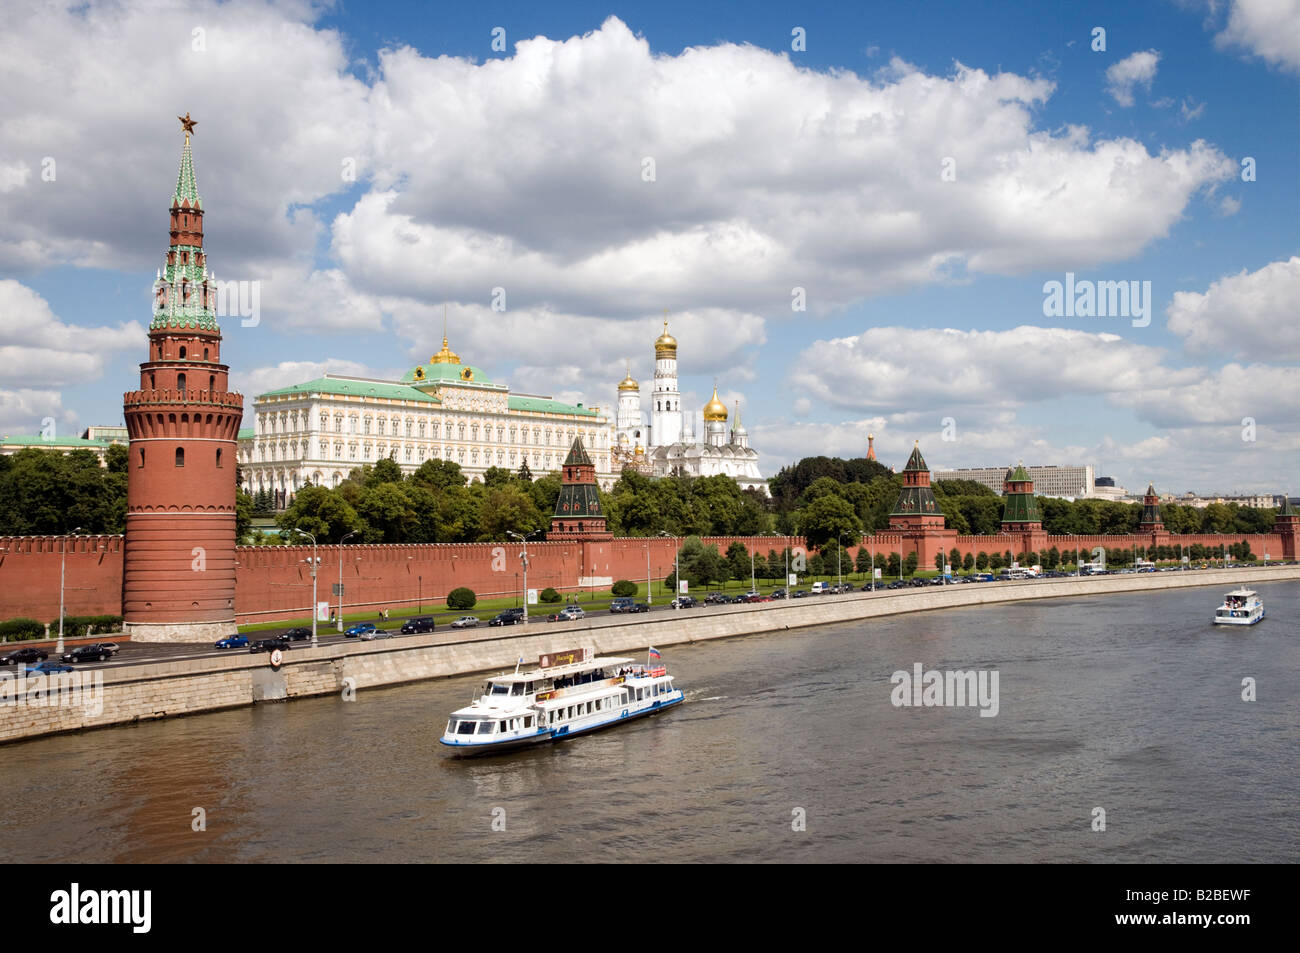 Boat ride on the Moskva river past the Kremlin Moscow Russia - Stock Image